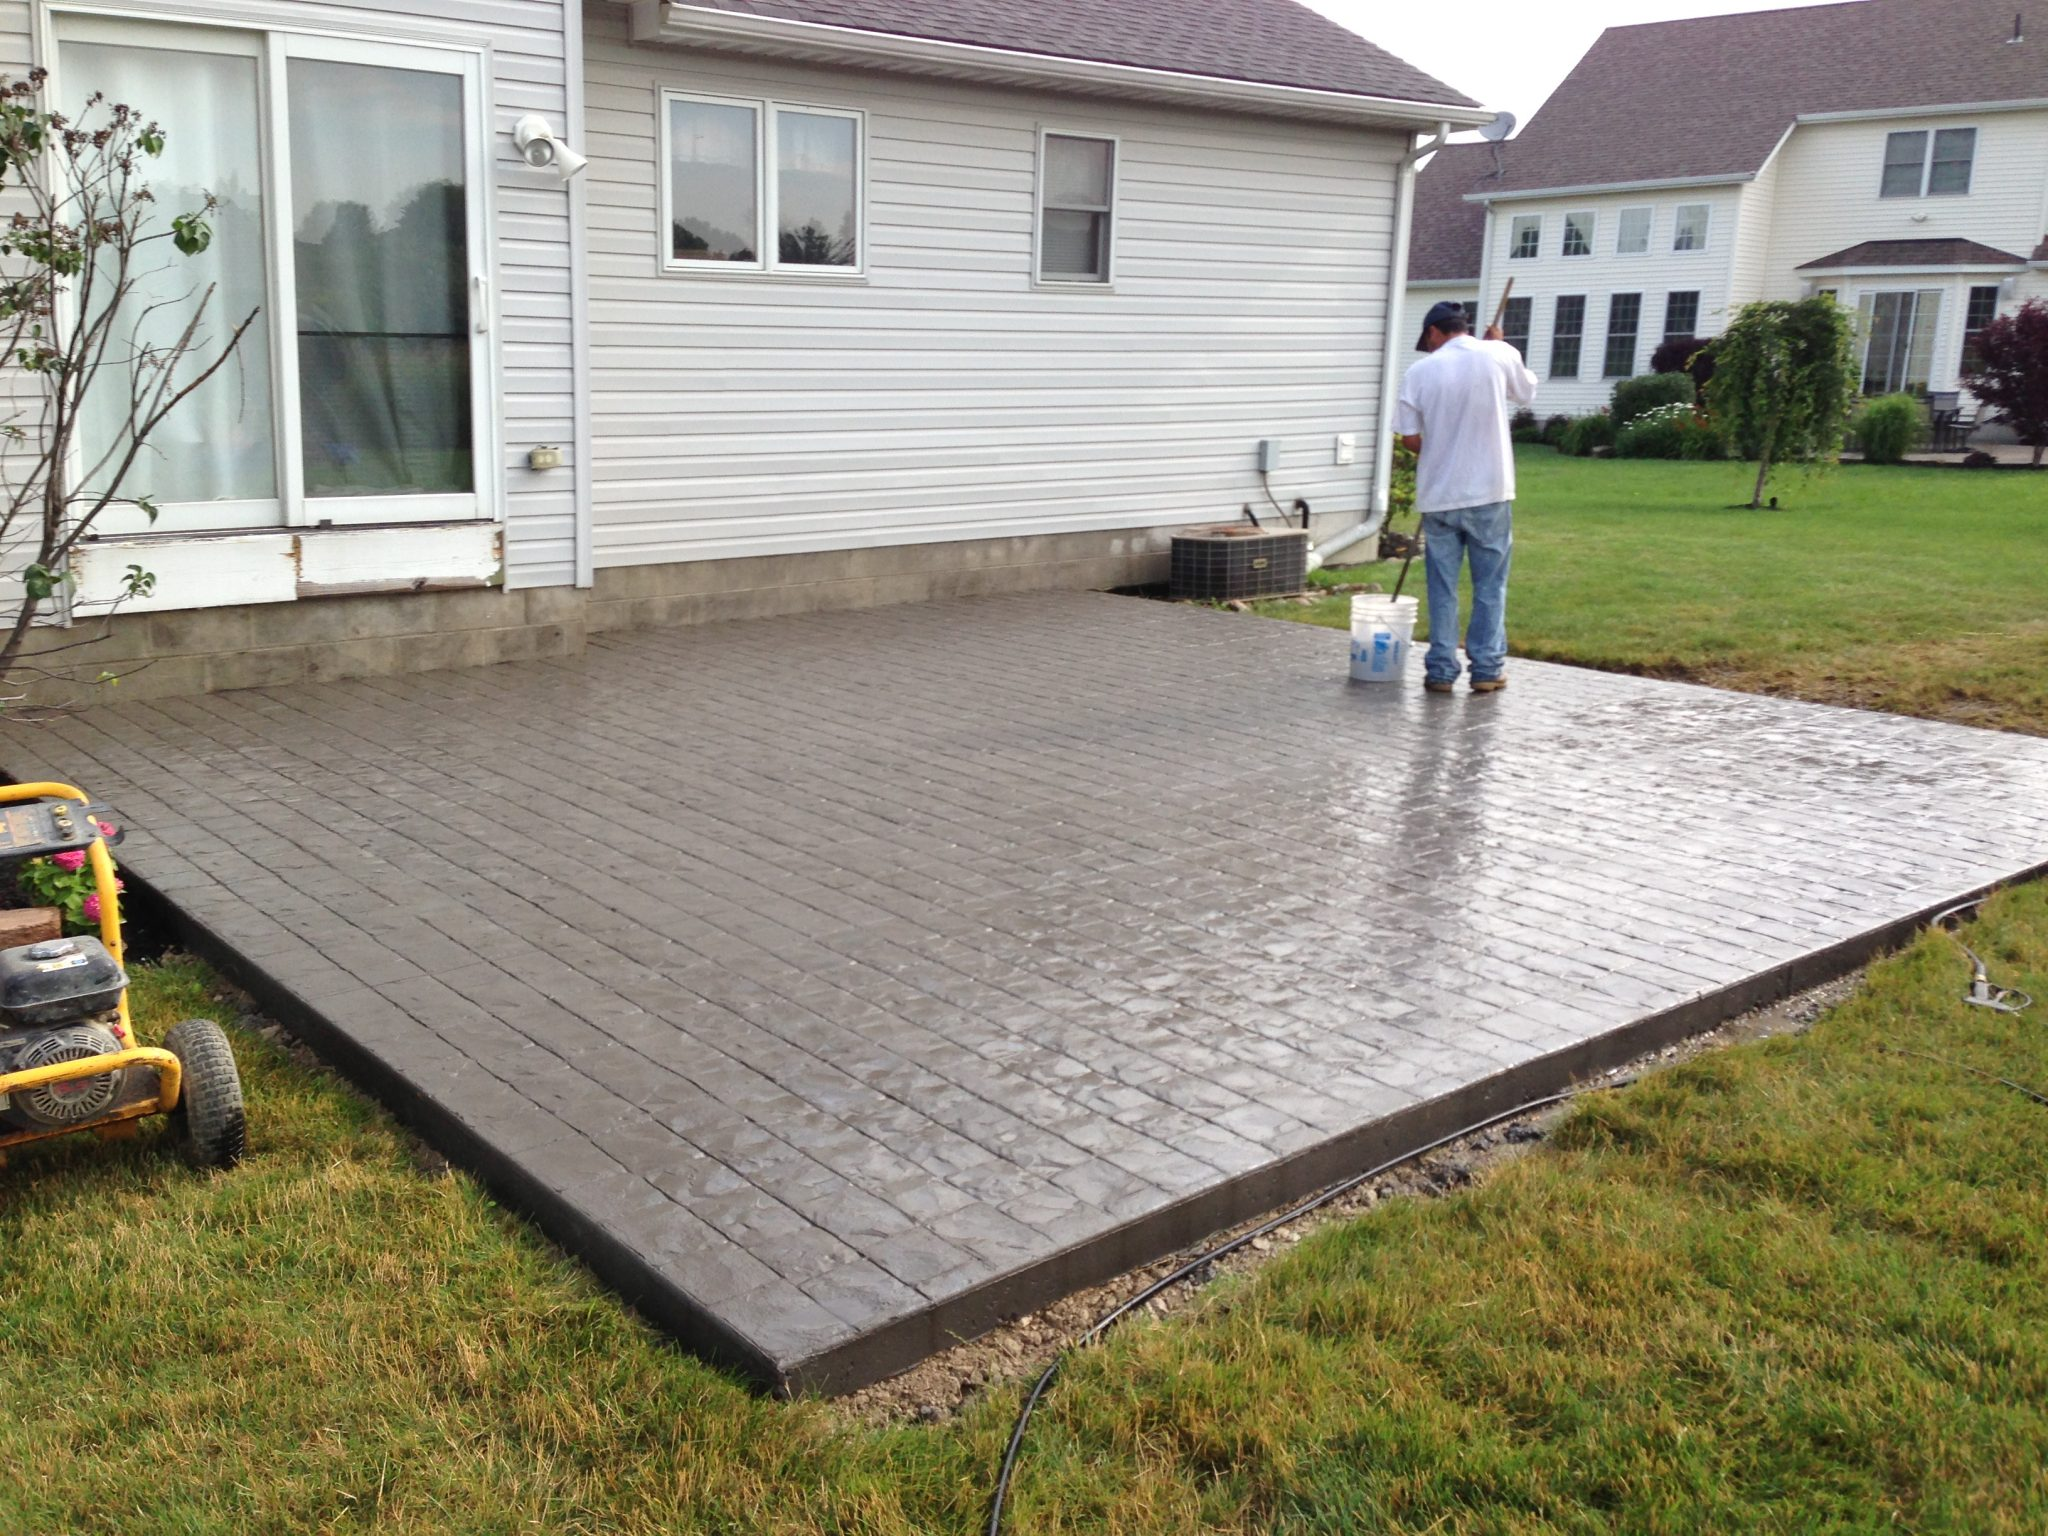 Patio ideas for backyard with wrought iron patio furniture black and red sunbrella on cool stamped concrete patio flooring